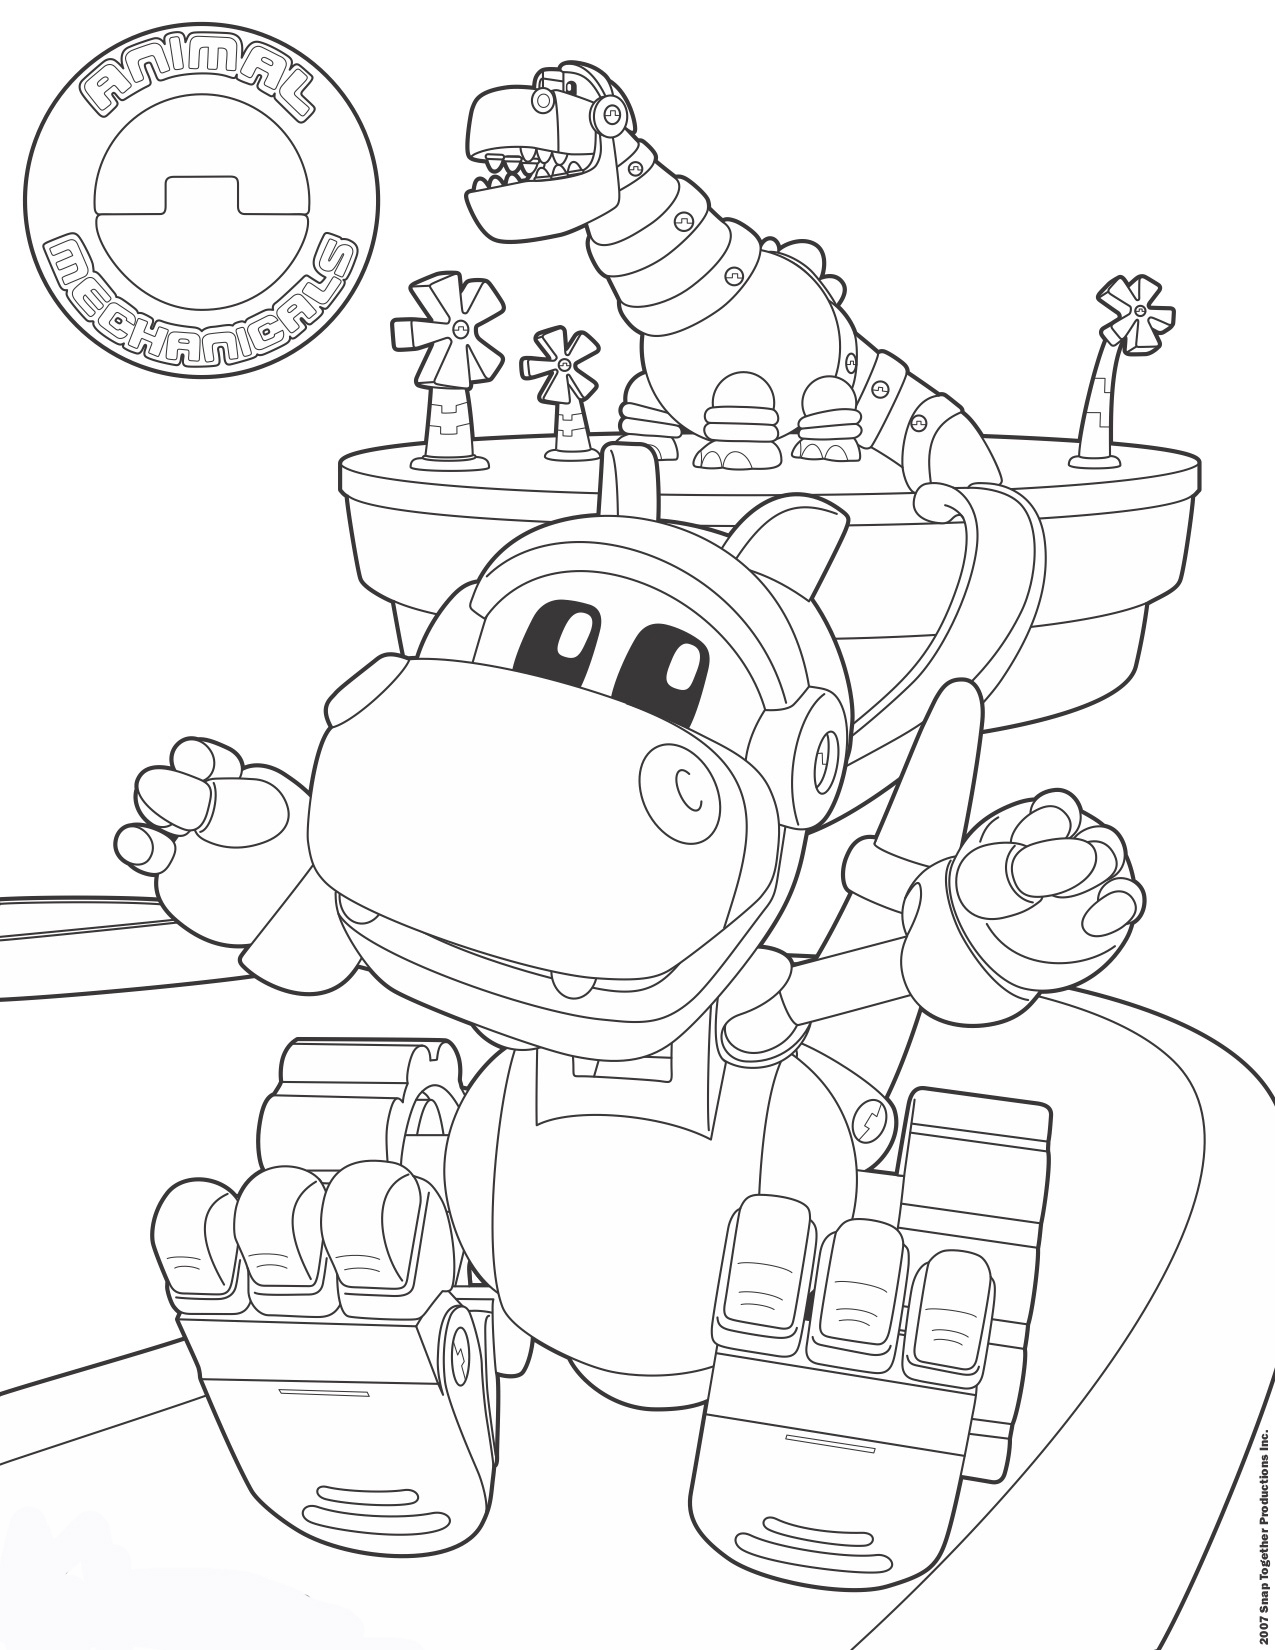 animal mechanicals coloring pages Animal Mechanicals :: Kid Genius animal mechanicals coloring pages